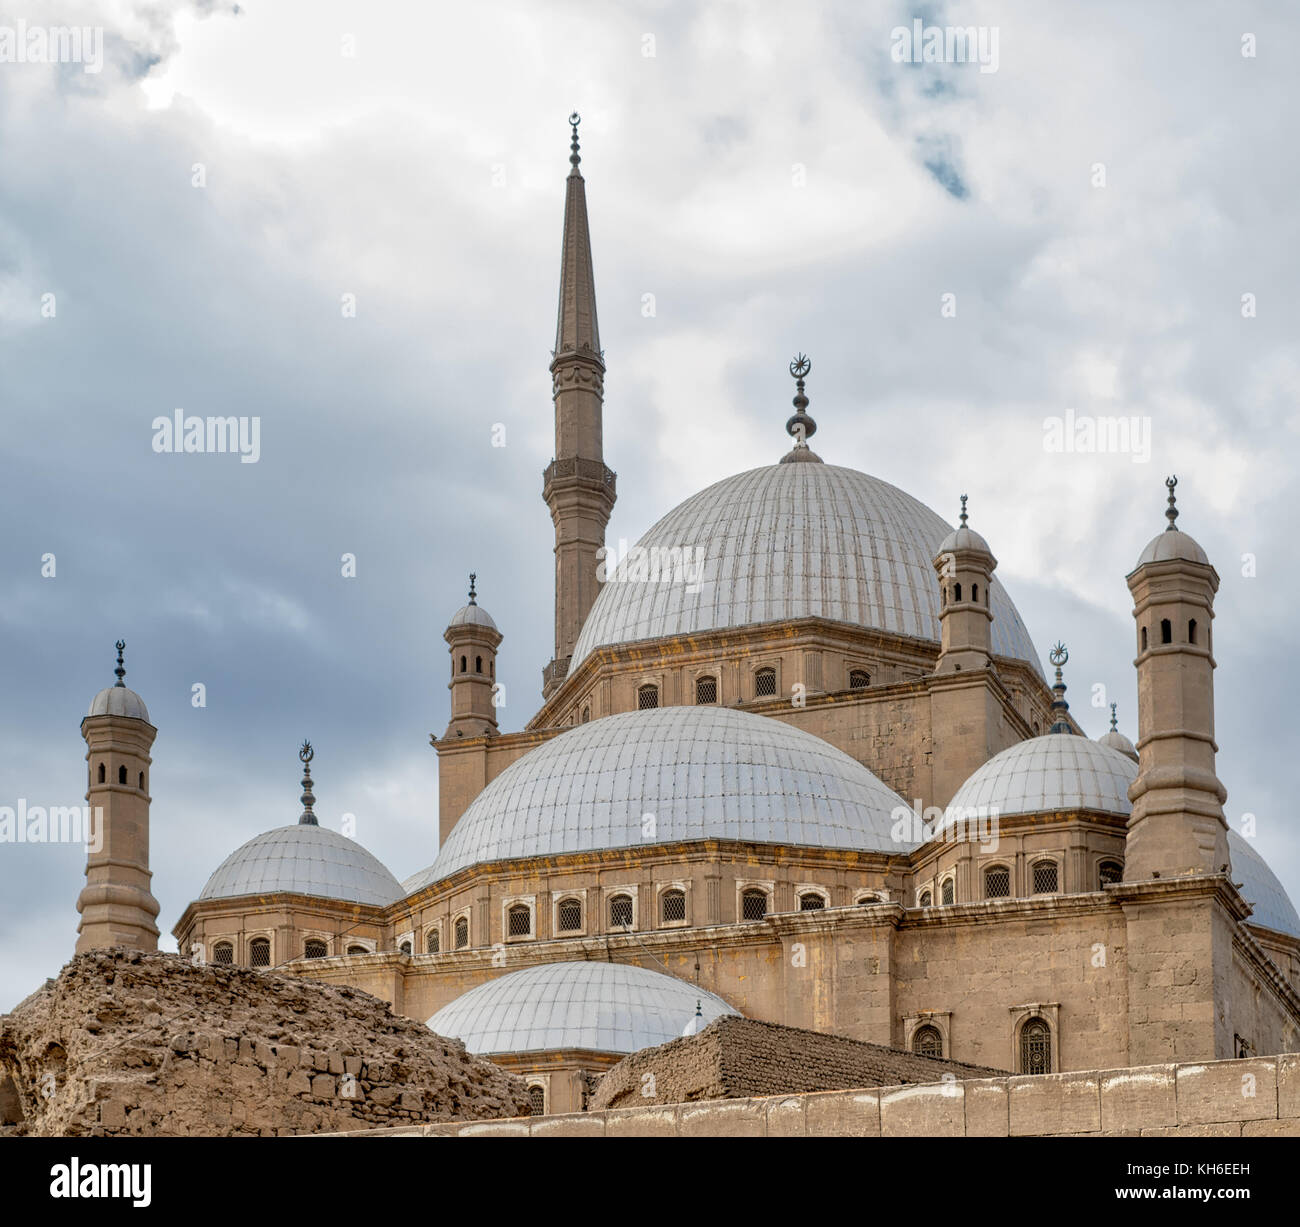 Domes of the great Mosque of Muhammad Ali Pasha (Alabaster Mosque), Citadel of Cairo, Egypt - Stock Image